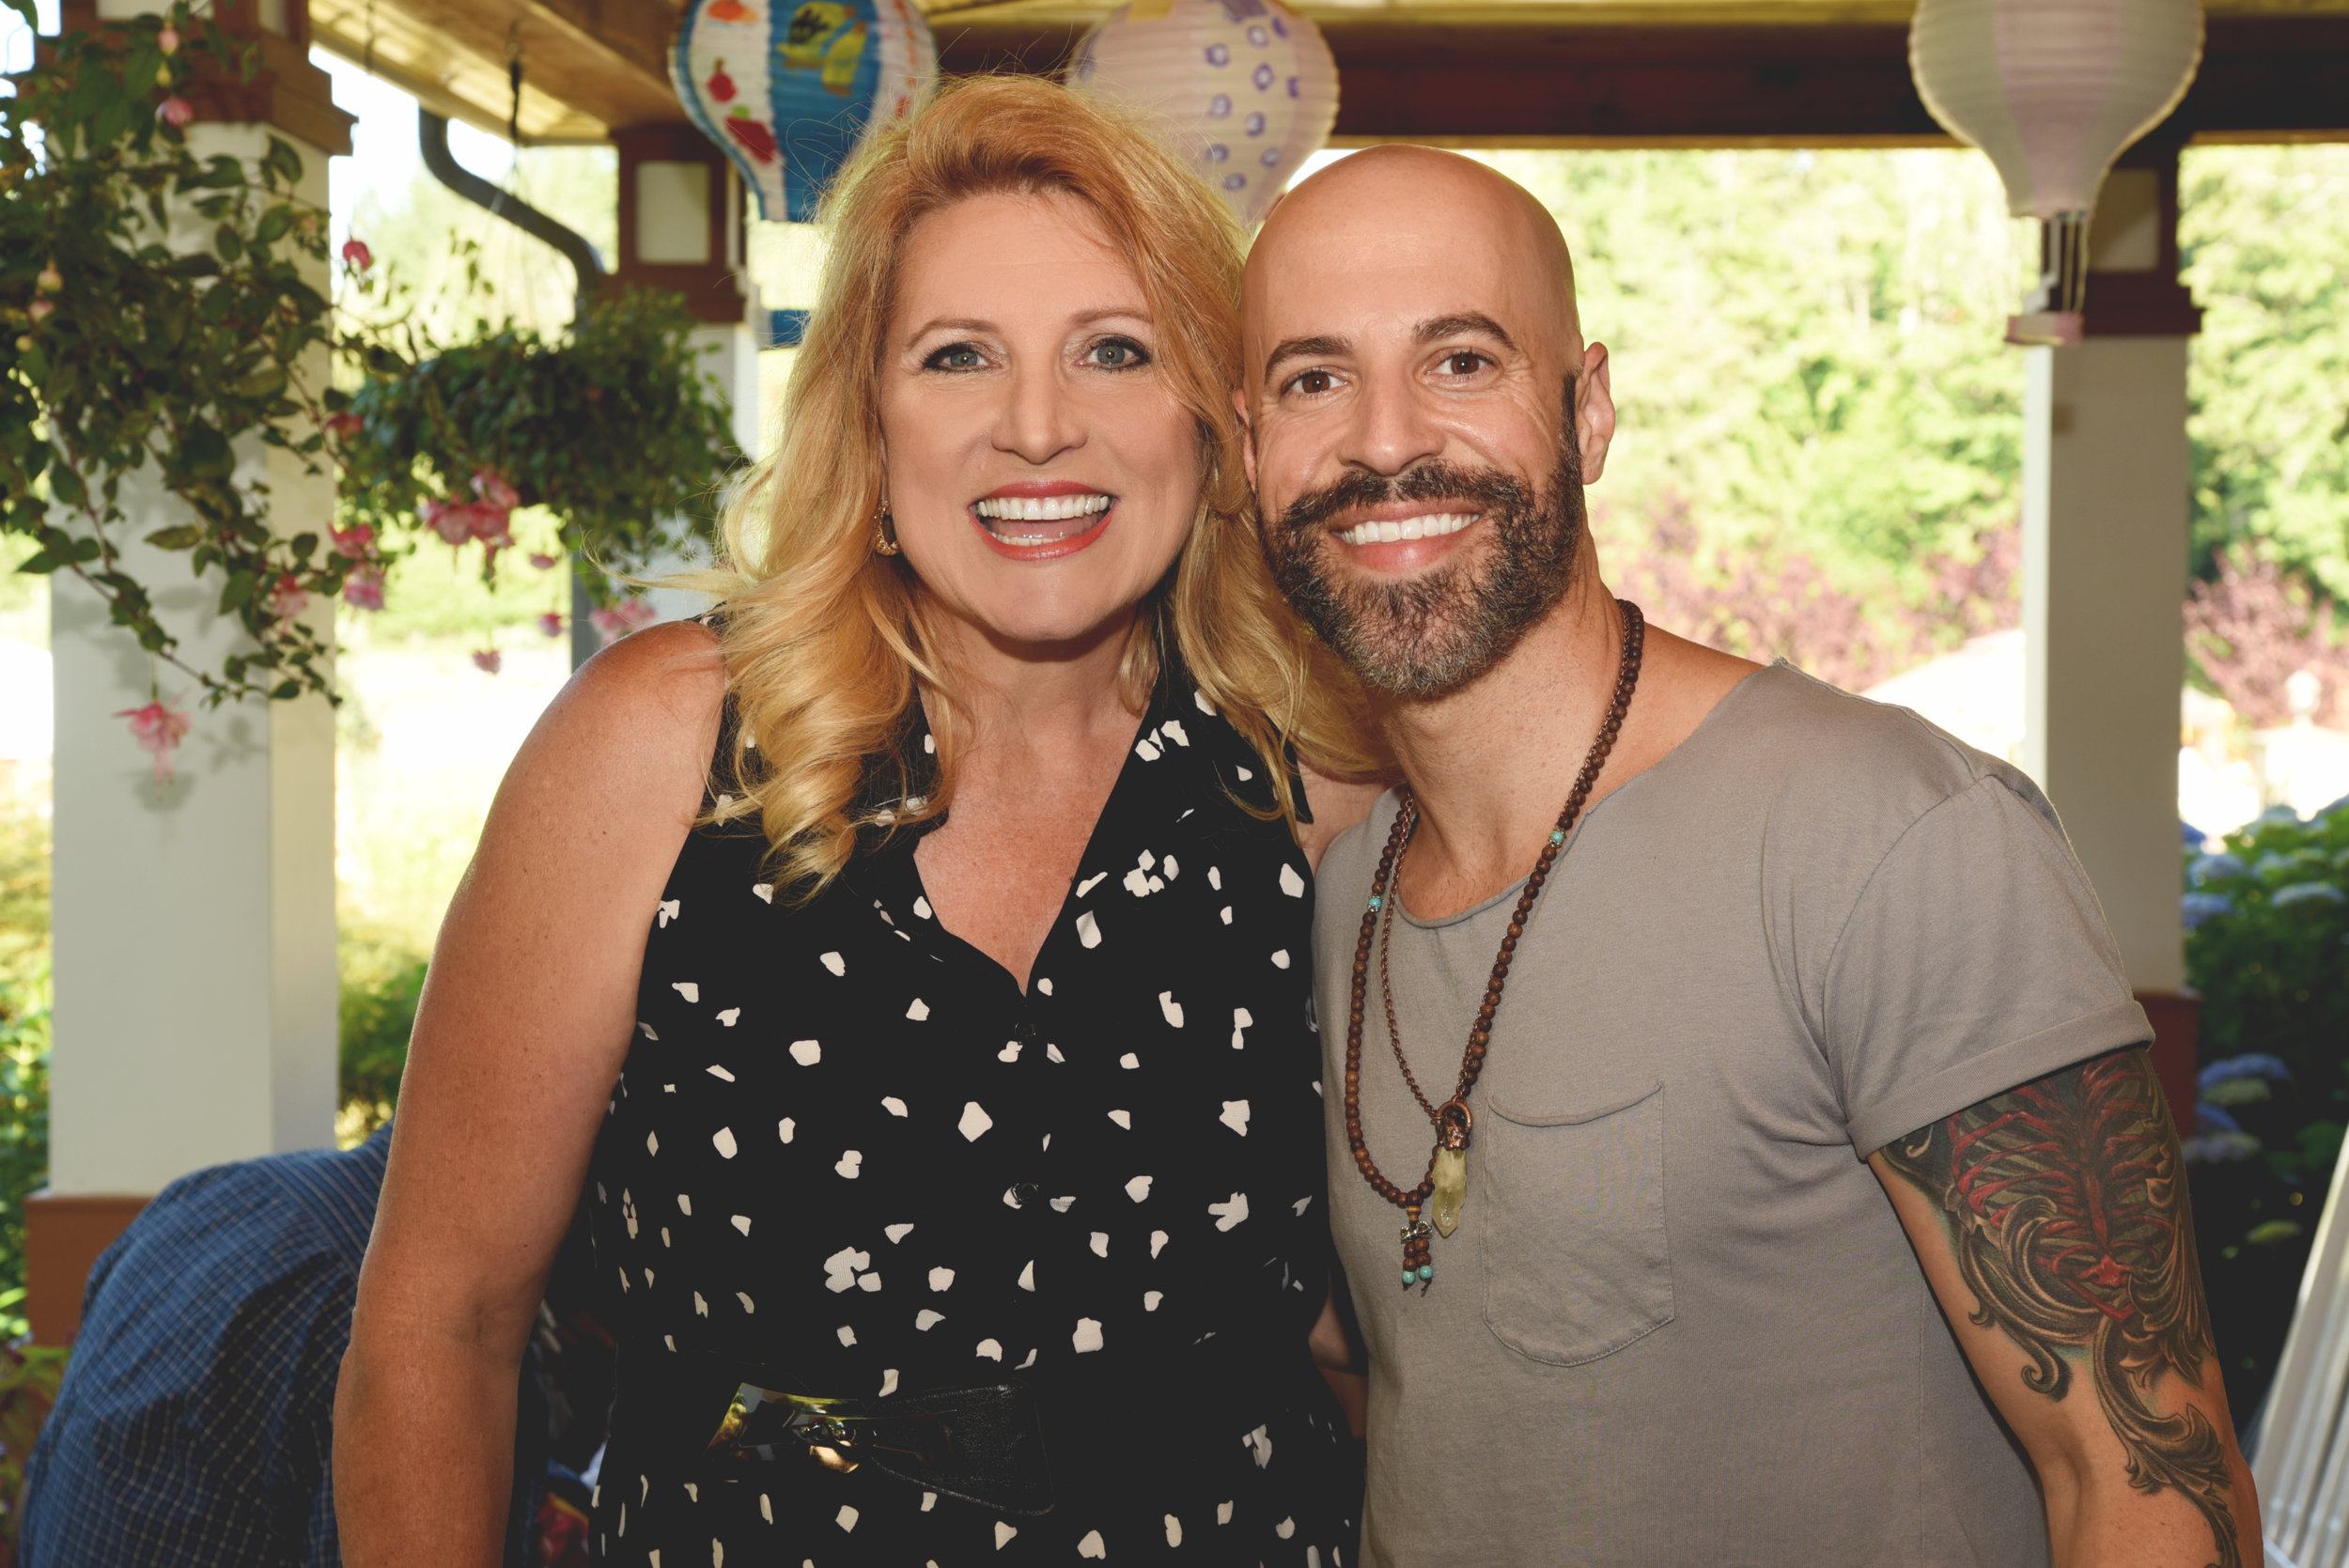 """Delilah and Chris Daughtry at the fifth-annual """"Farm to Feast"""" fundraiser for Point Hope at the radio host's private residence and farm outside Seattle, WA.   CLICK HERE for HIGH-RES VERSIONS OF ALL PICS  Photo by Ron Finney / courtesy of Point Hope"""